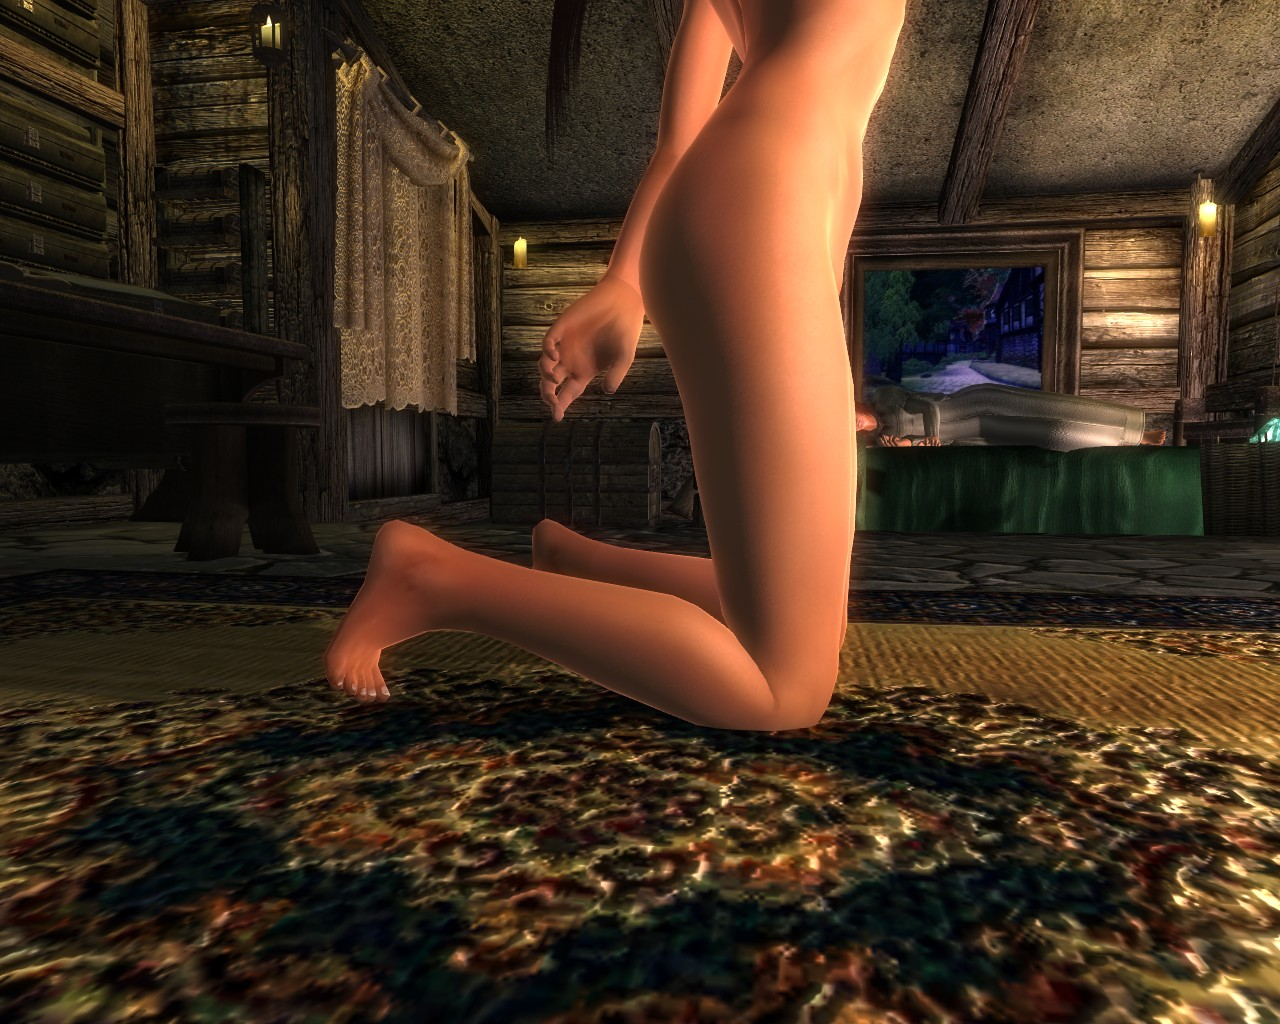 Oblivion adult mod youtube sex comic